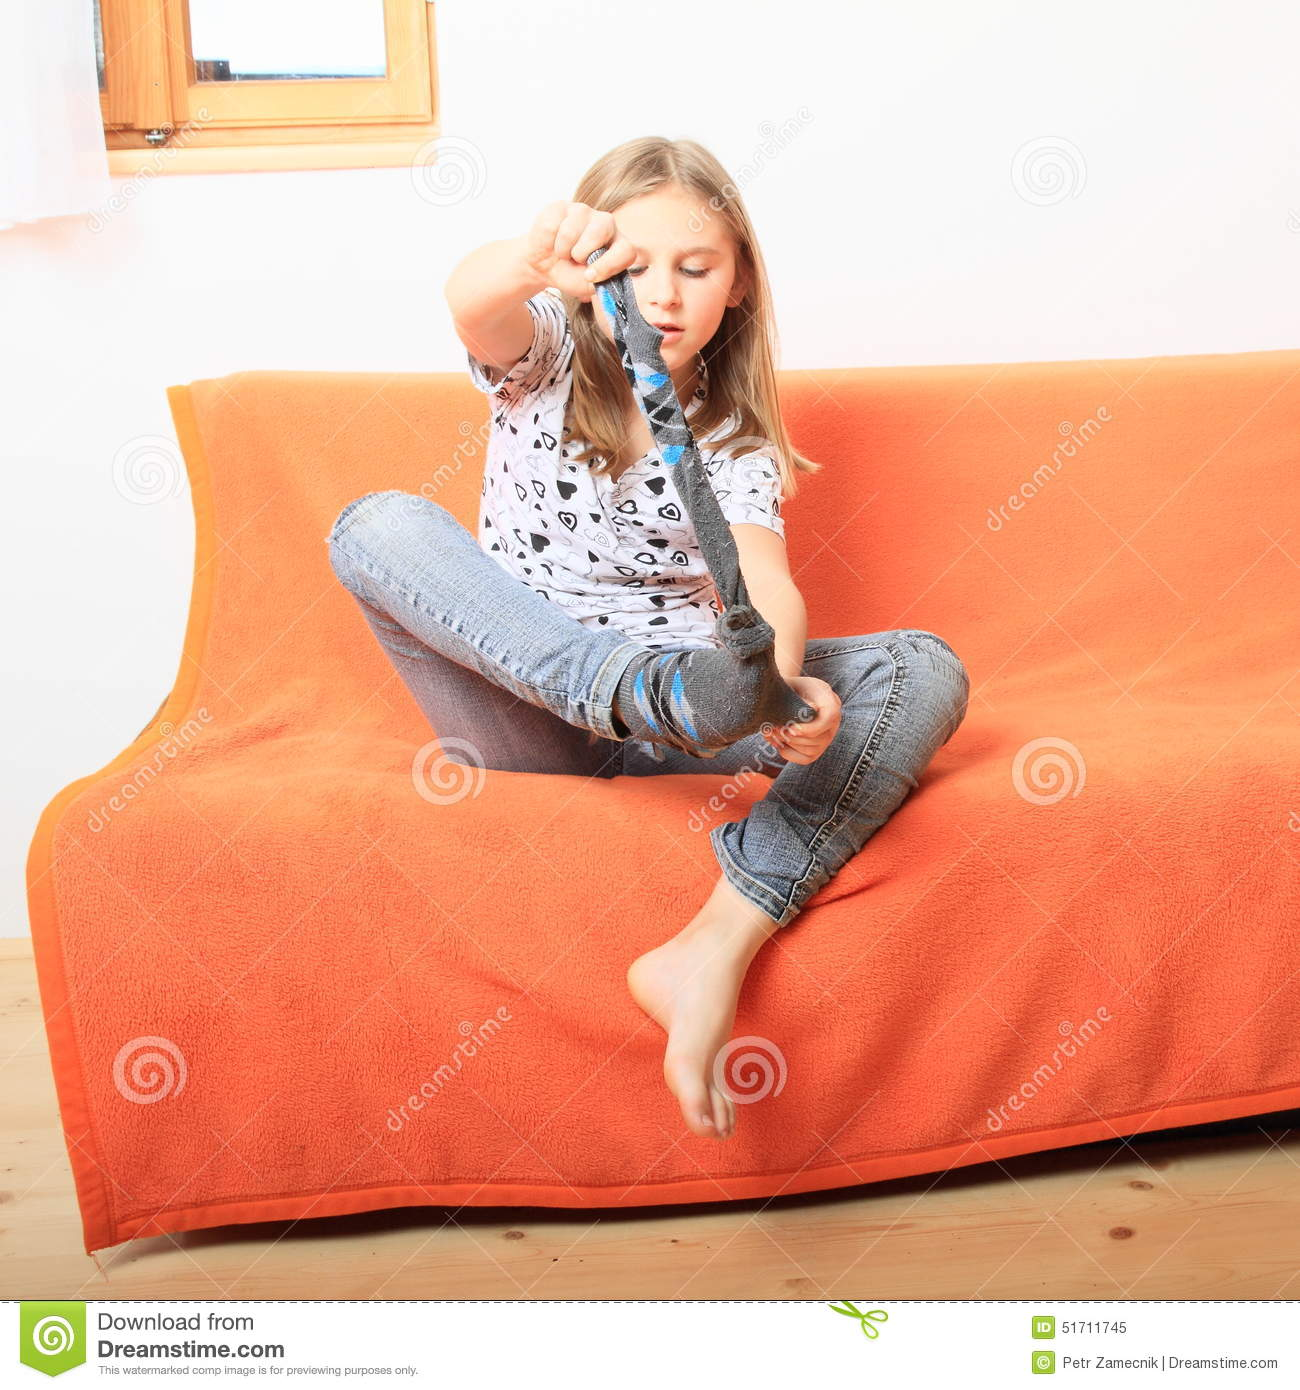 Hand Rubbed Brown Leather Recliner DZ24815 besides Moon System BeB further Red Leather Sectional Couch also Sofa besides Stock Photo Little Girl Divesting Socks Kid Sofa Orange Cover Image51711745. on sofa ottoman